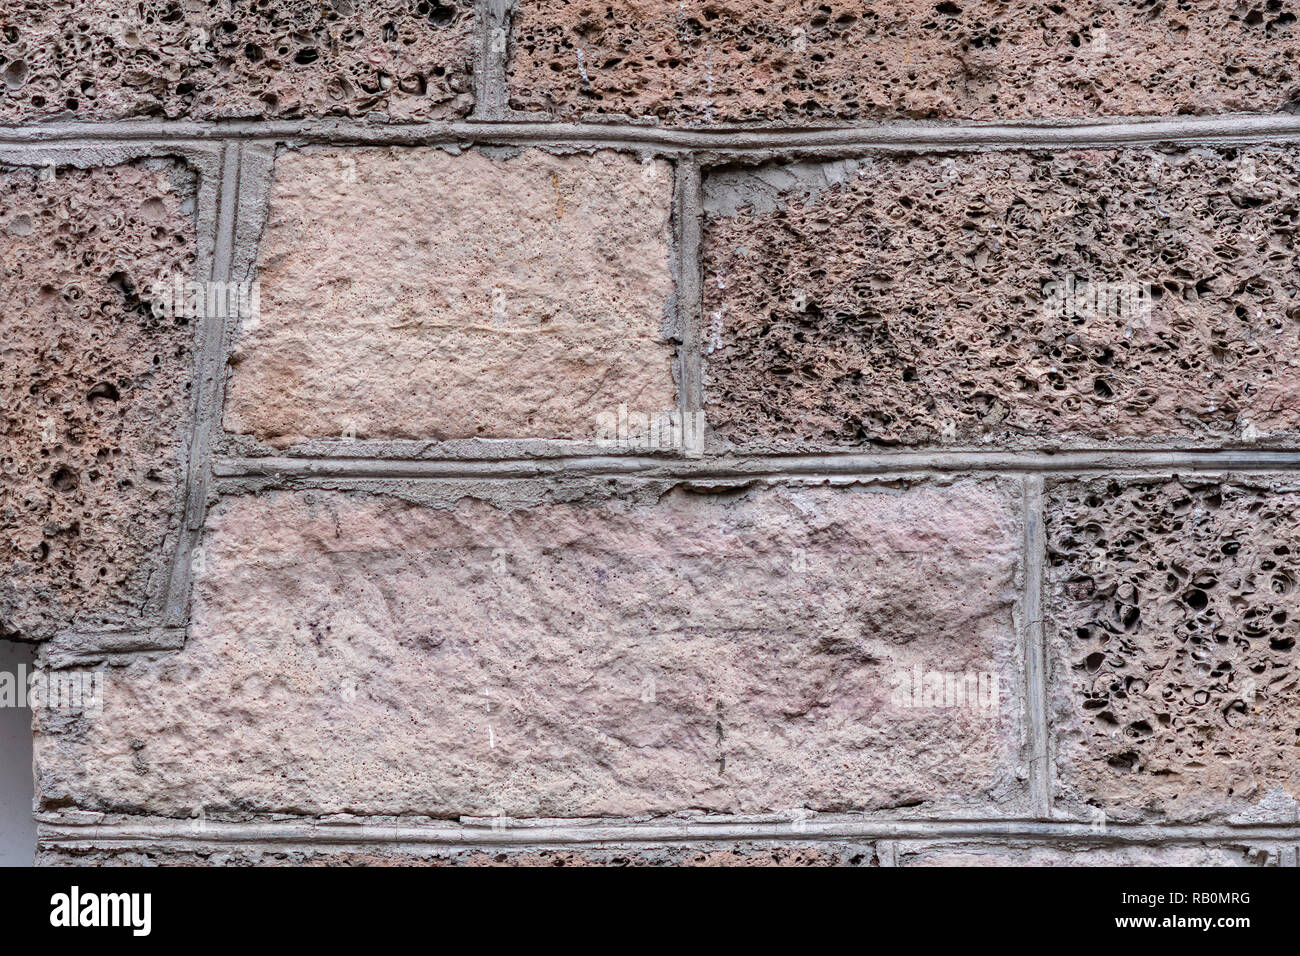 Close-up photo. Fragment of an old masonry wall. - Stock Image